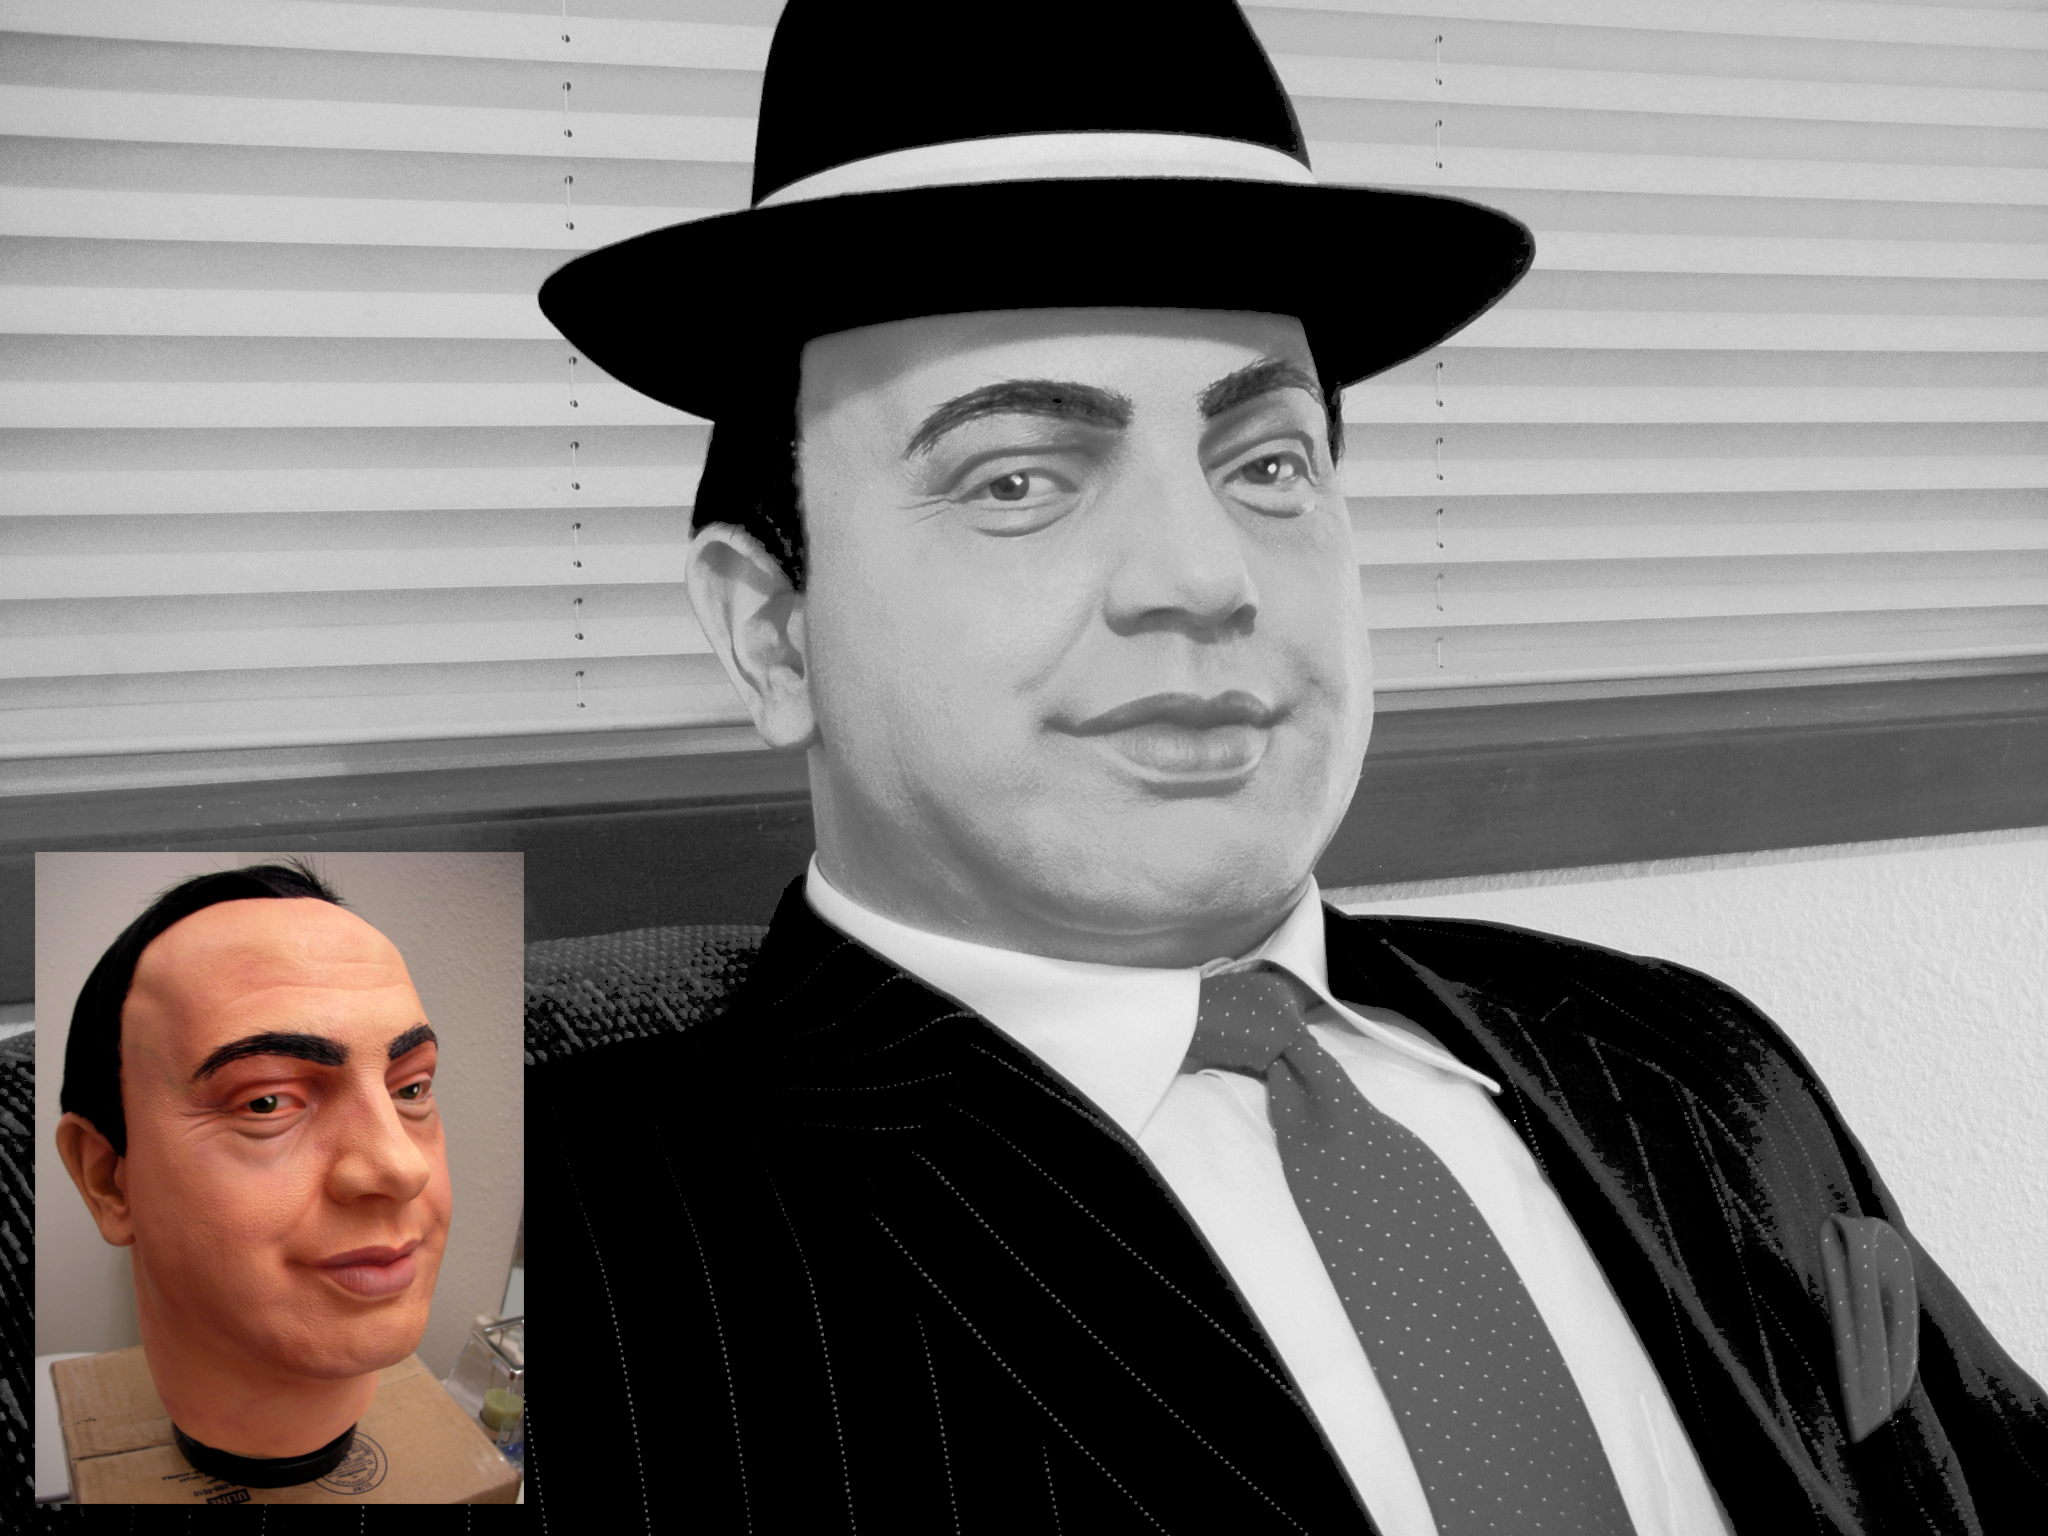 Al Capone Life-size Replica, Black and White Close-up